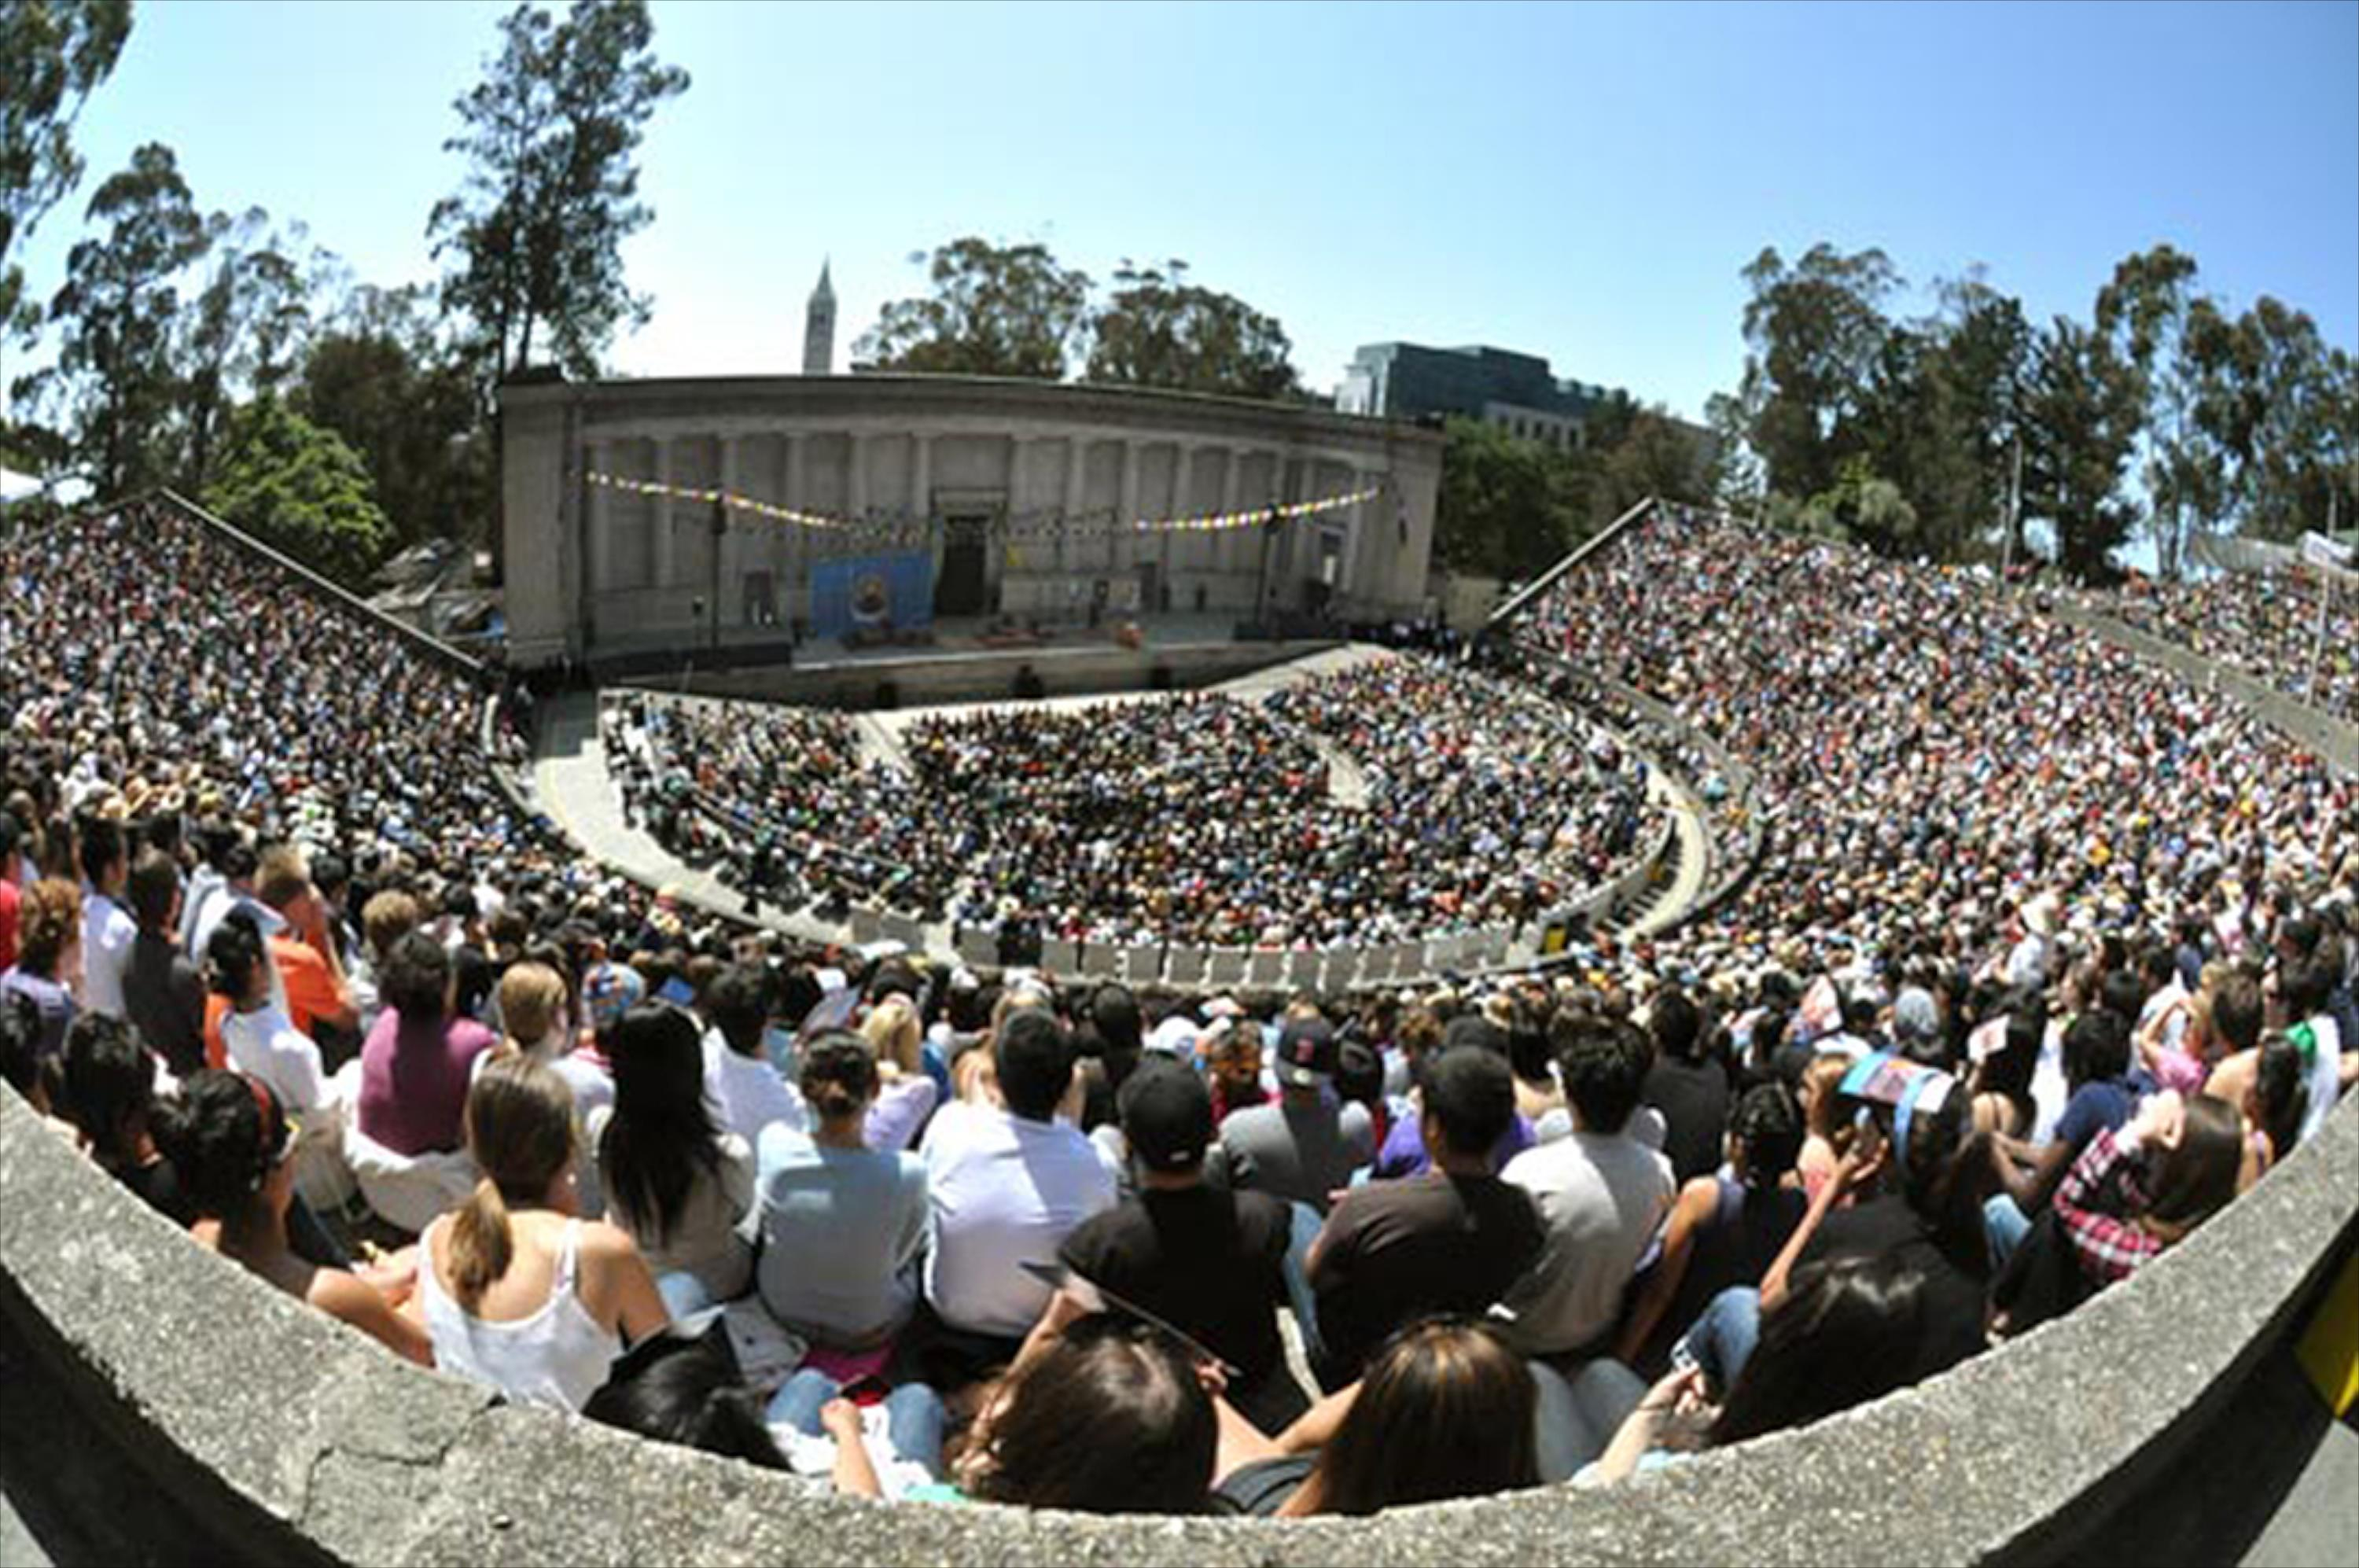 Photo of crowd at the Greek Theater